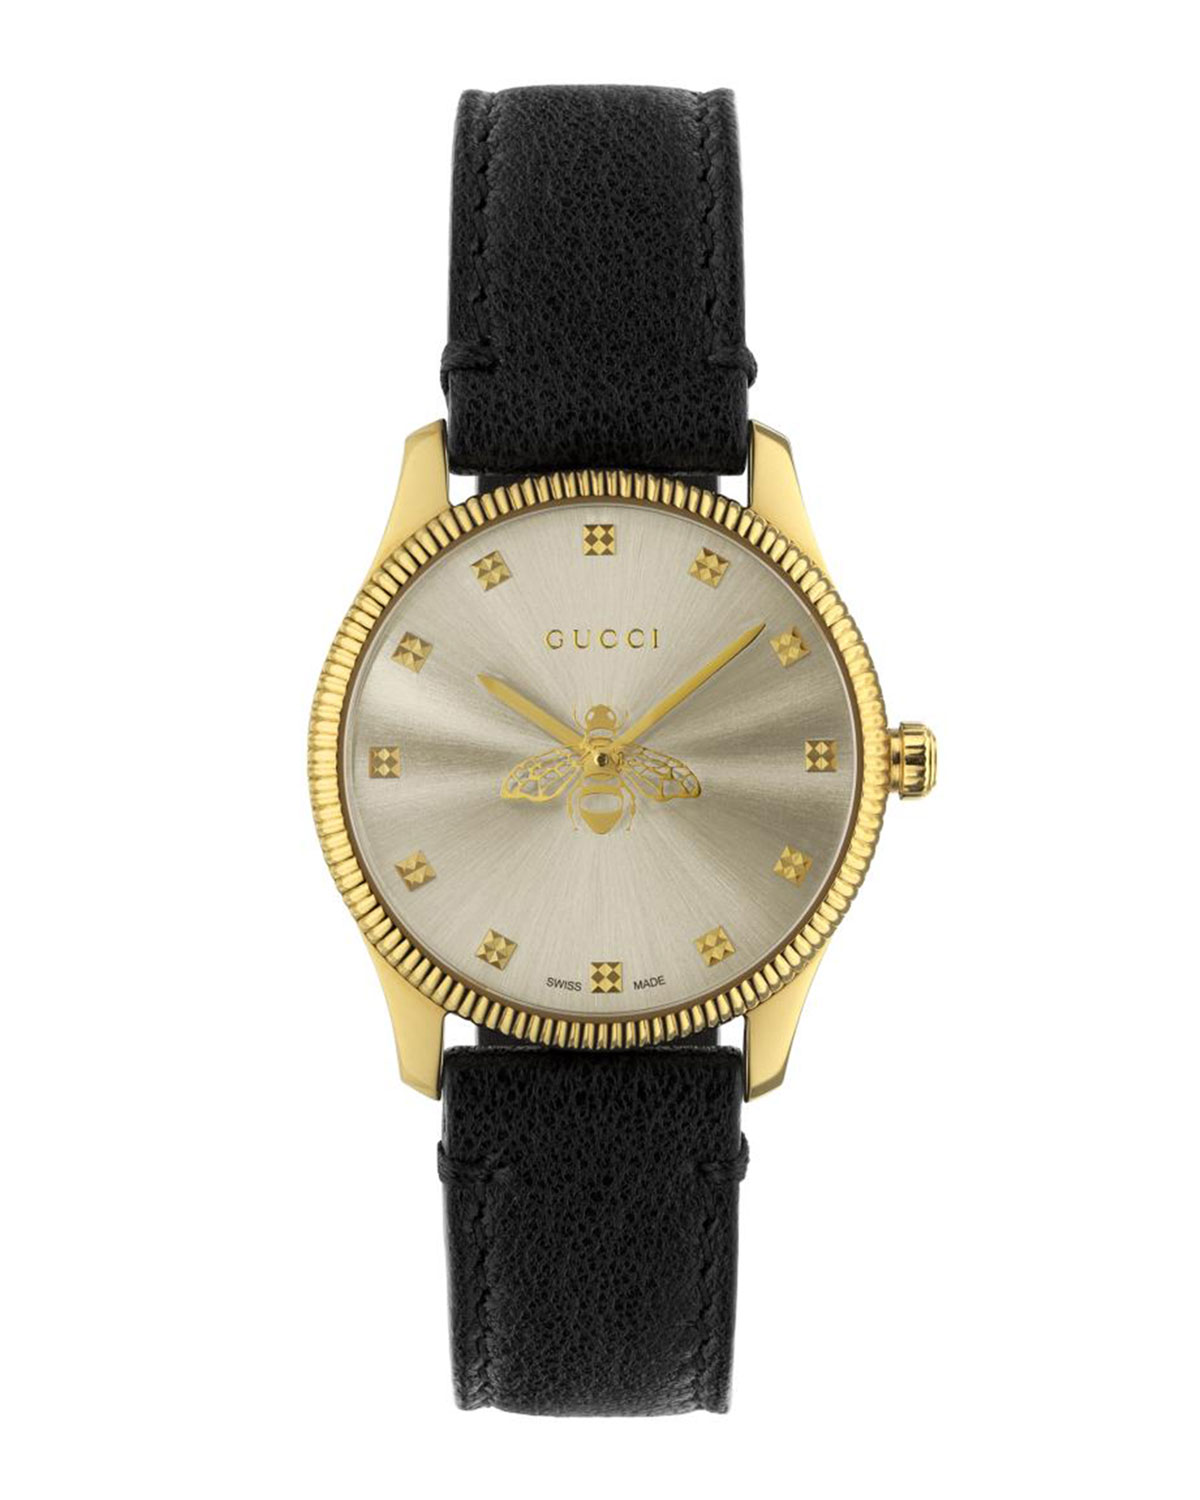 29mm G-Timeless Bee Watch with Black Leather Strap